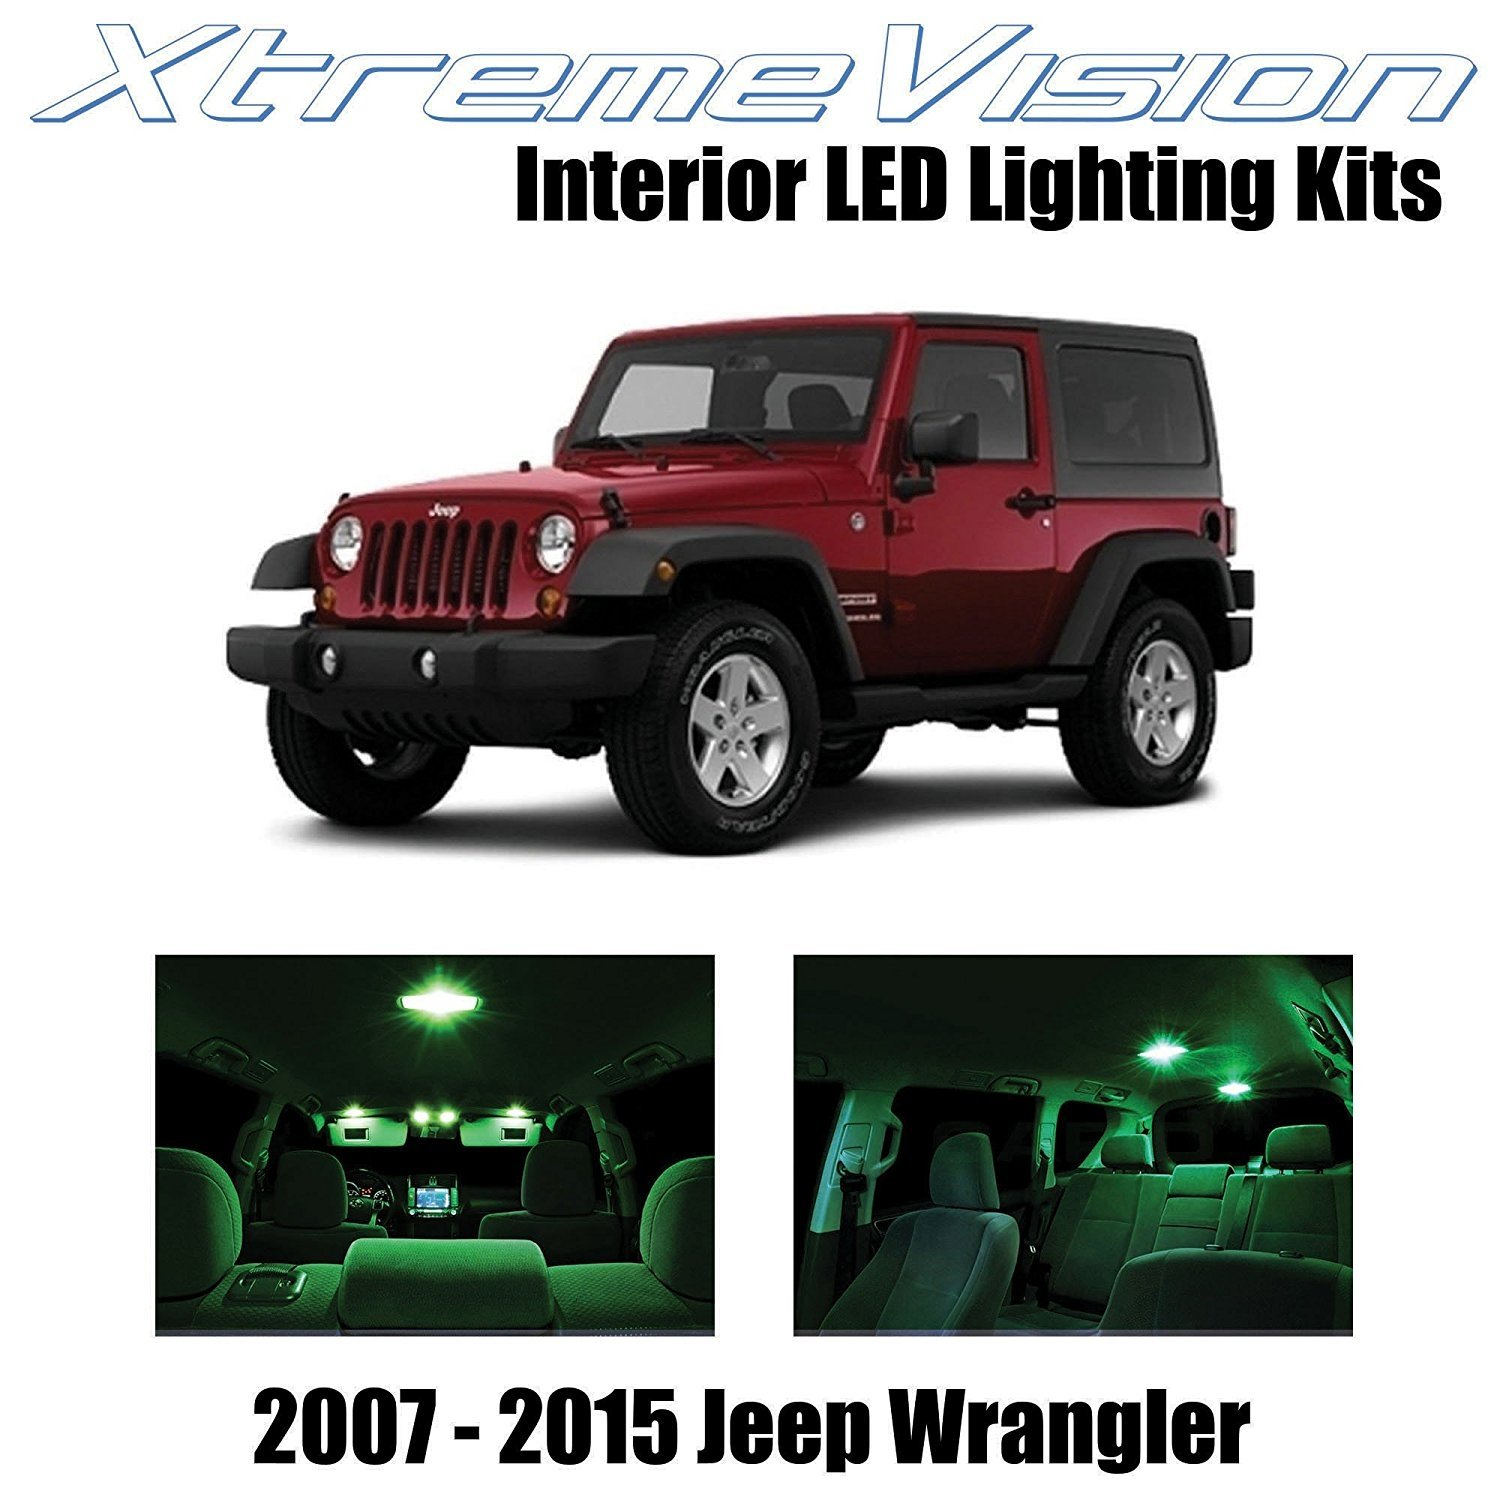 XtremeVision LED for Jeep Wrangler JK 2007-2015 (5 Pieces) Green Premium Interior LED Kit Package + Installation Tool